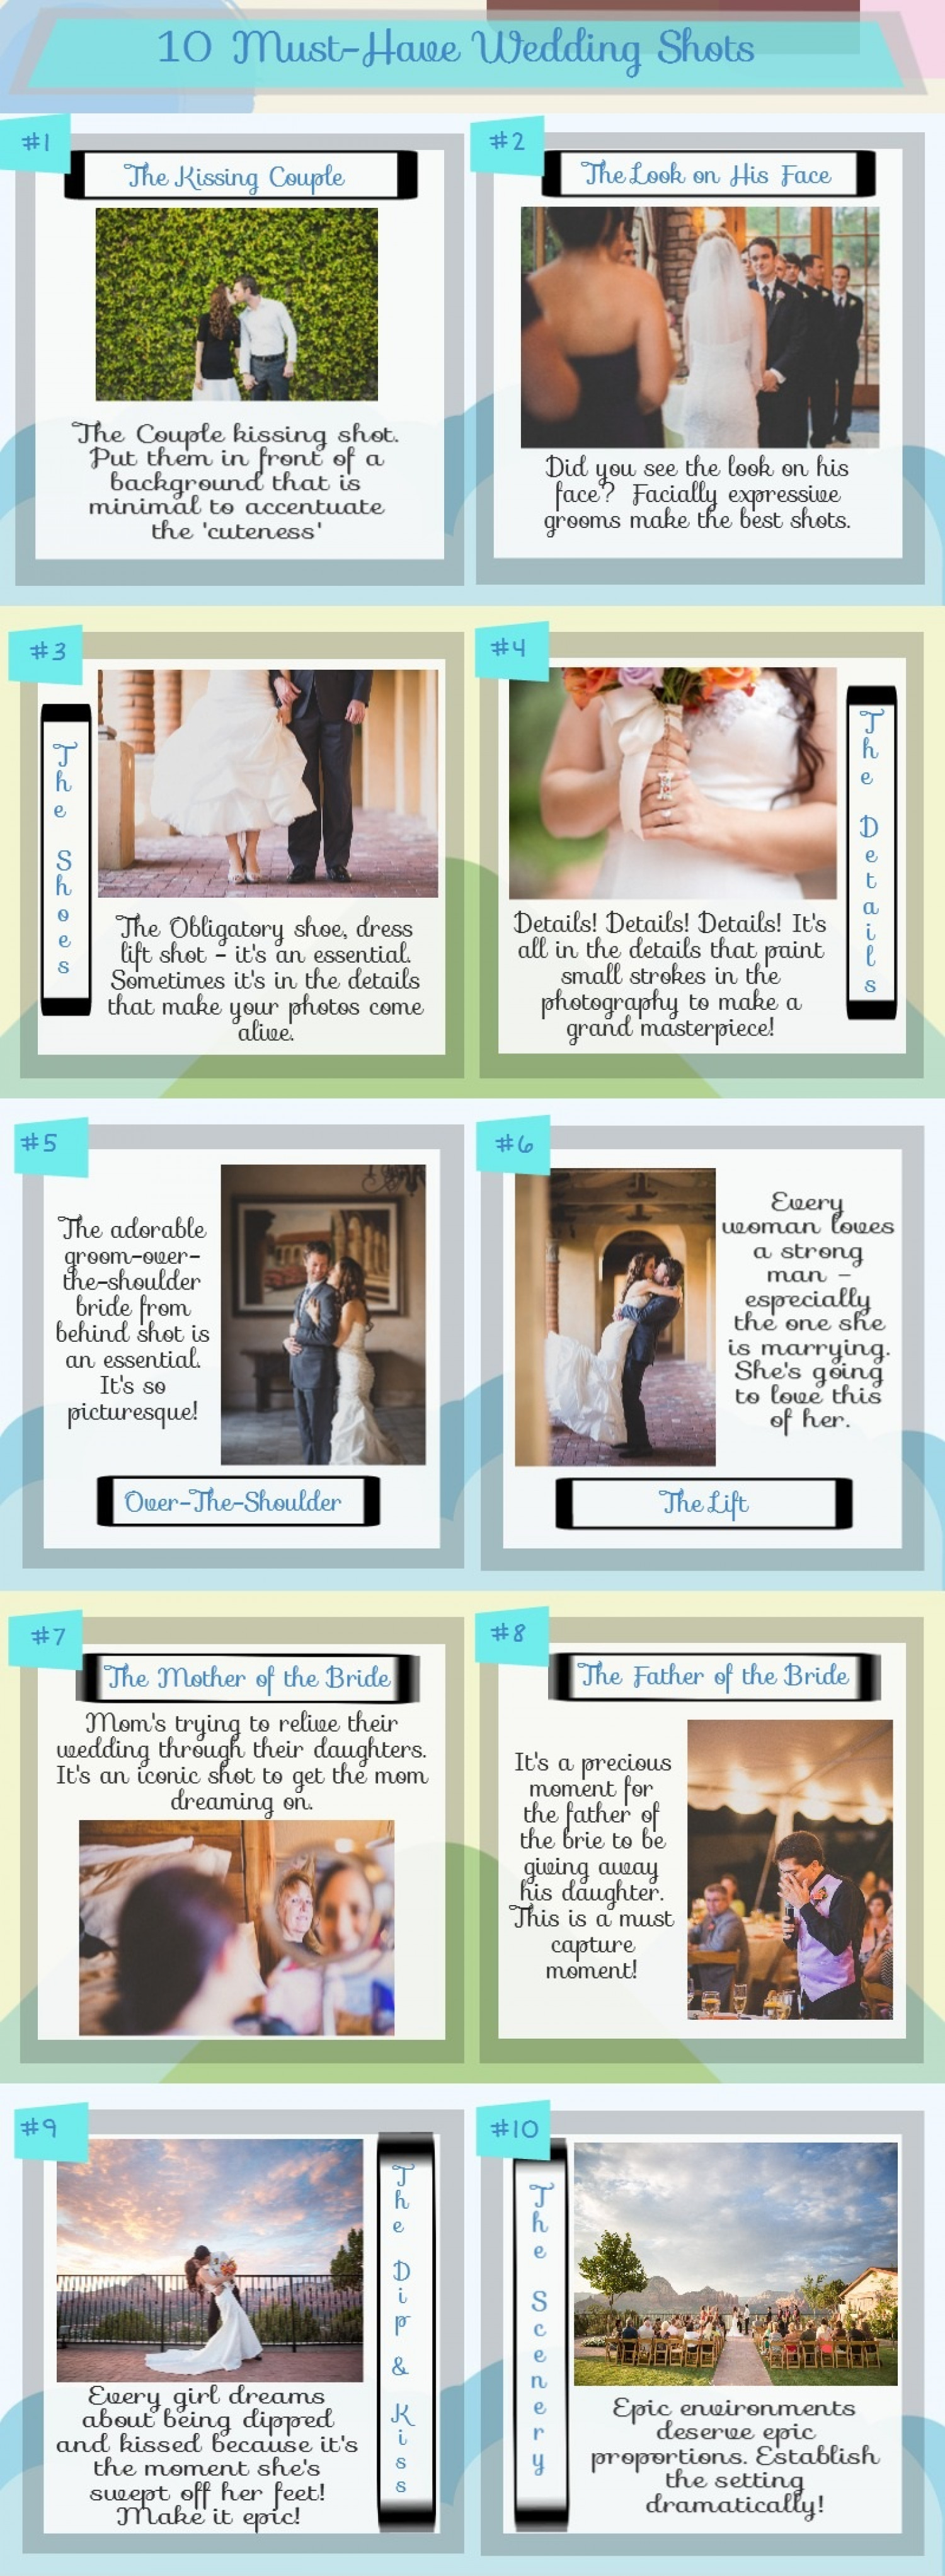 10 Must-Have Wedding Shots Infographic